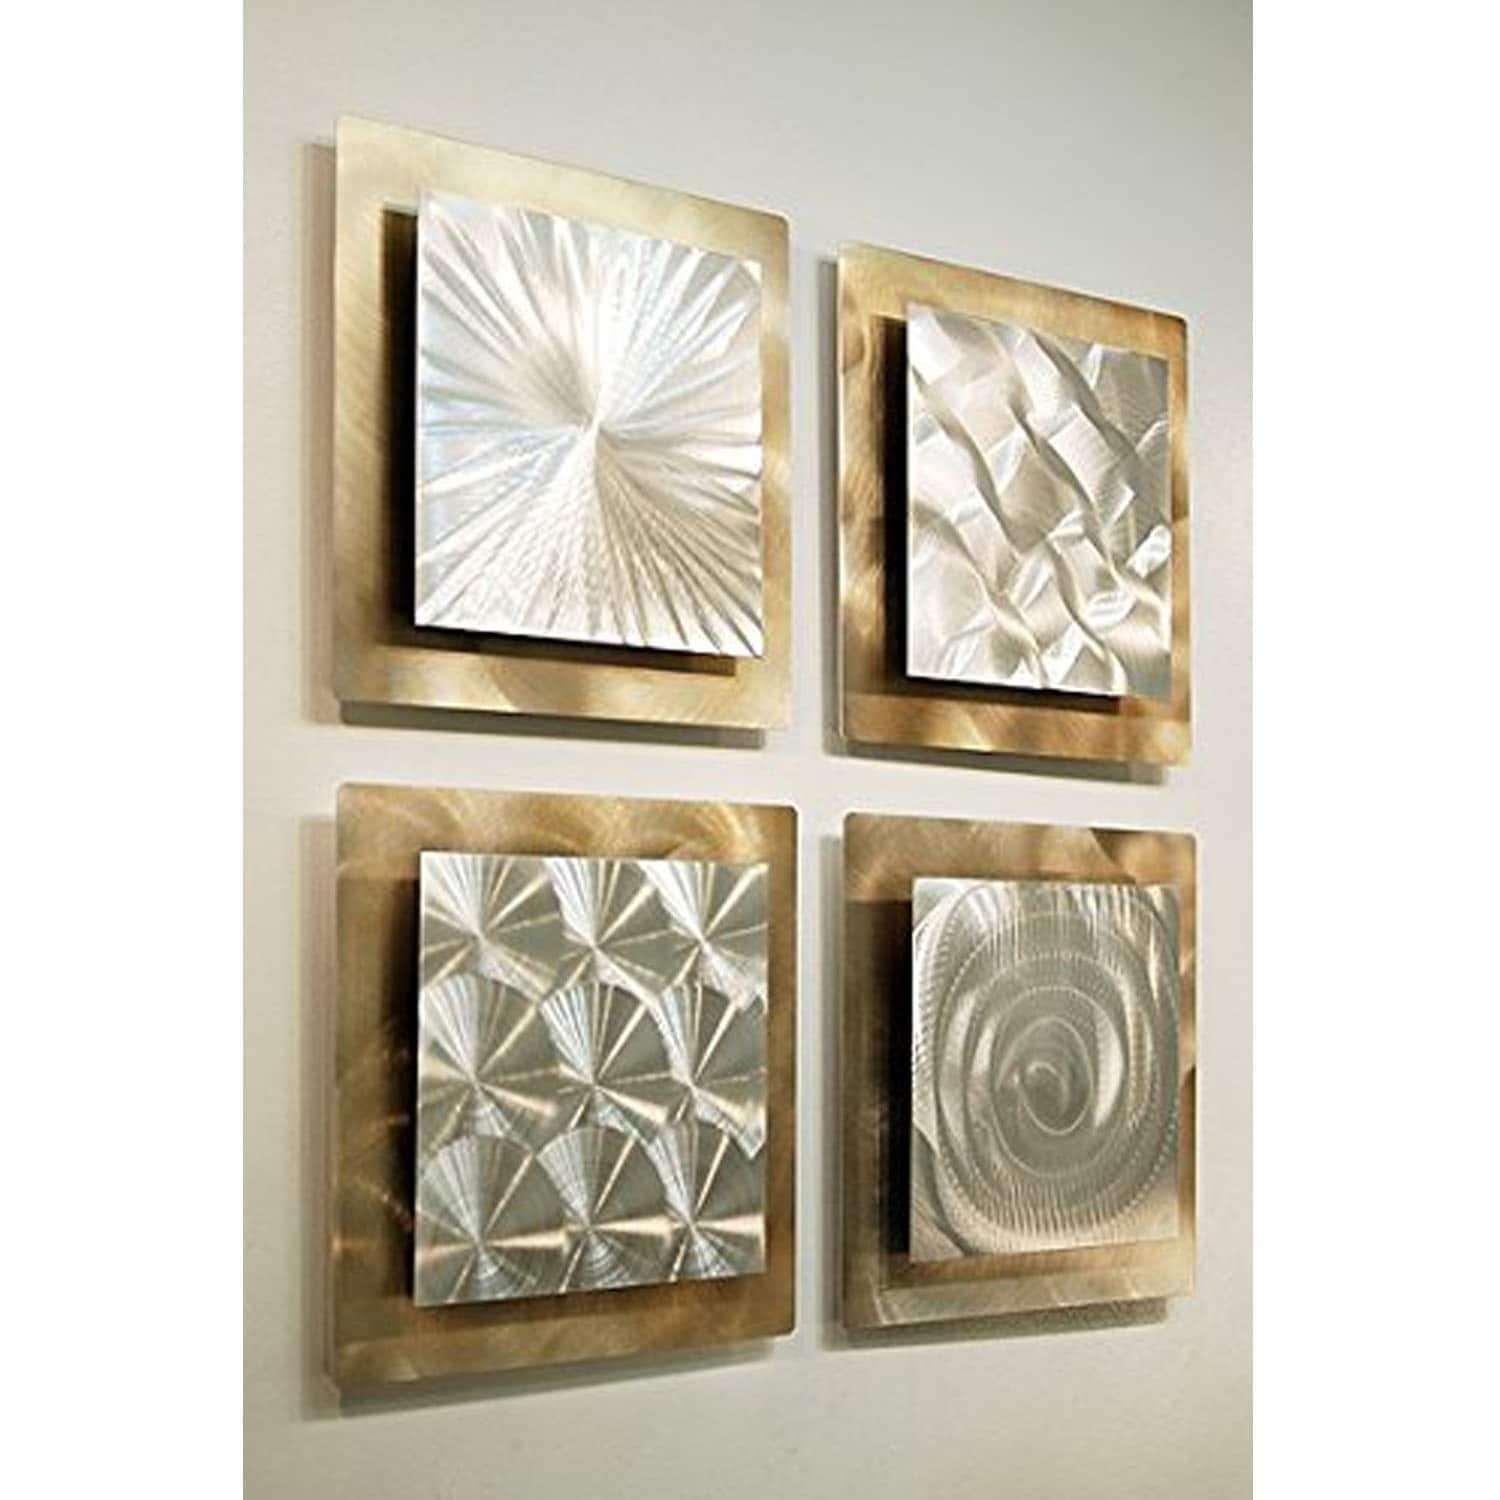 Statements2000 Set Of 4 Gold / Silver Metal Wall Art Accentjon With Most Popular Wall Art Accents (View 12 of 15)